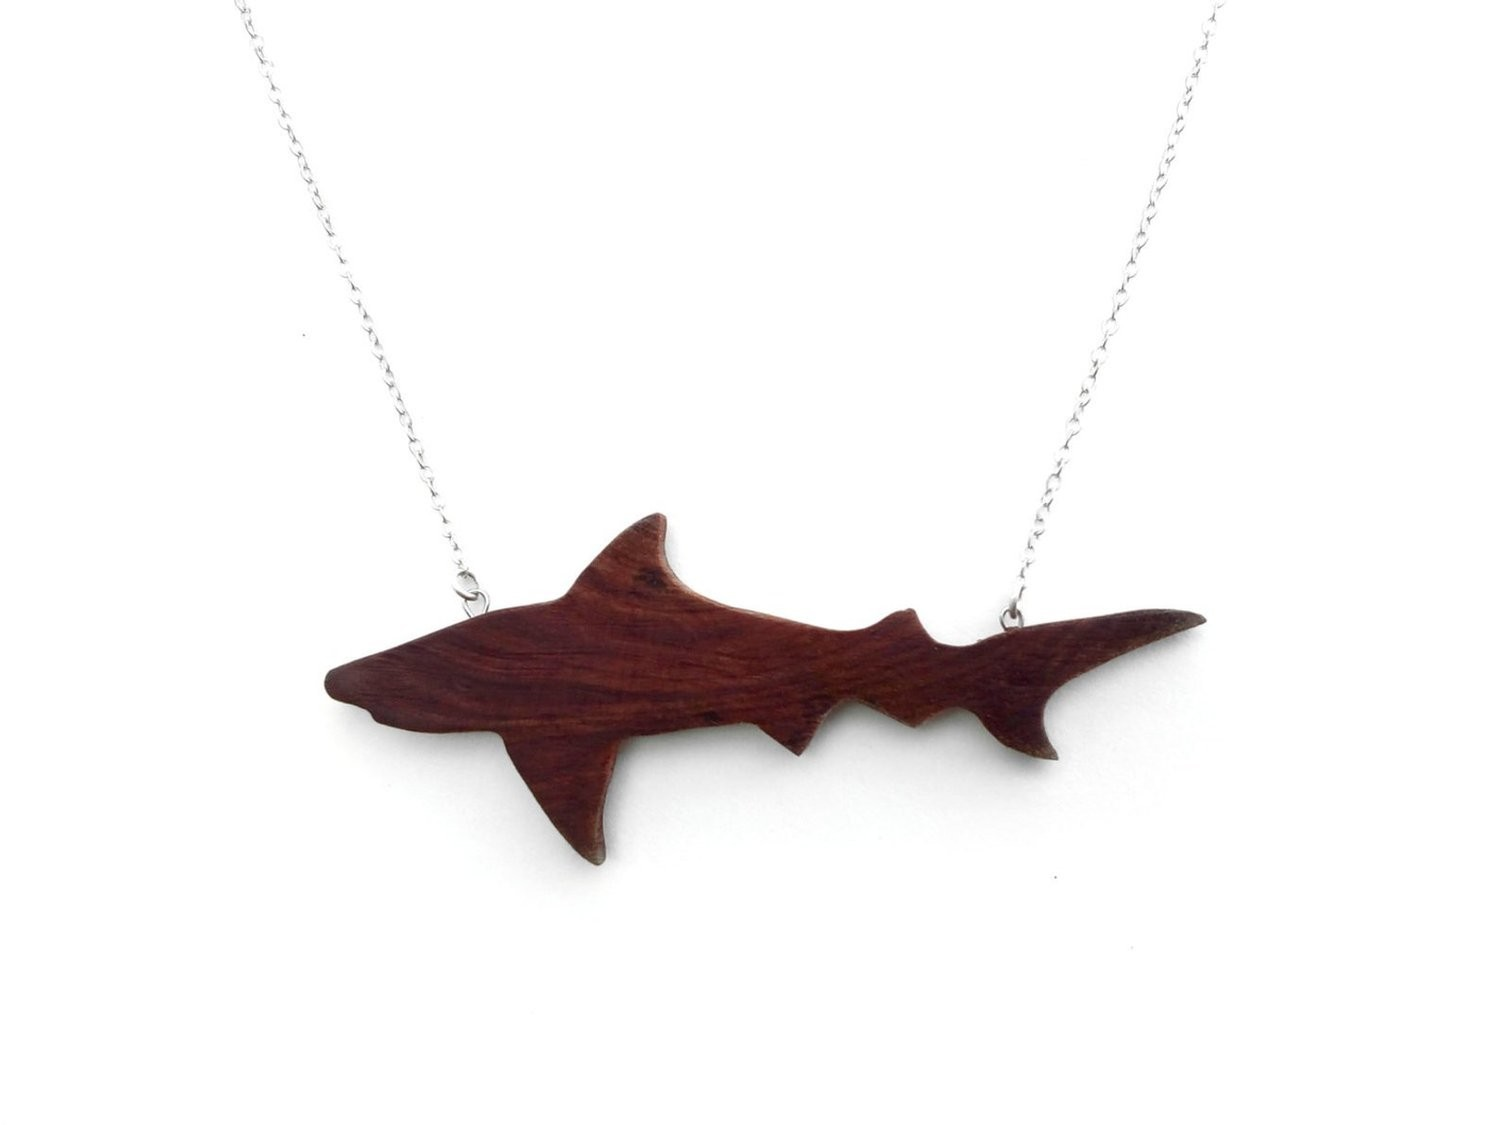 BERMUDA CEDAR TIGER SHARK NECKLACE